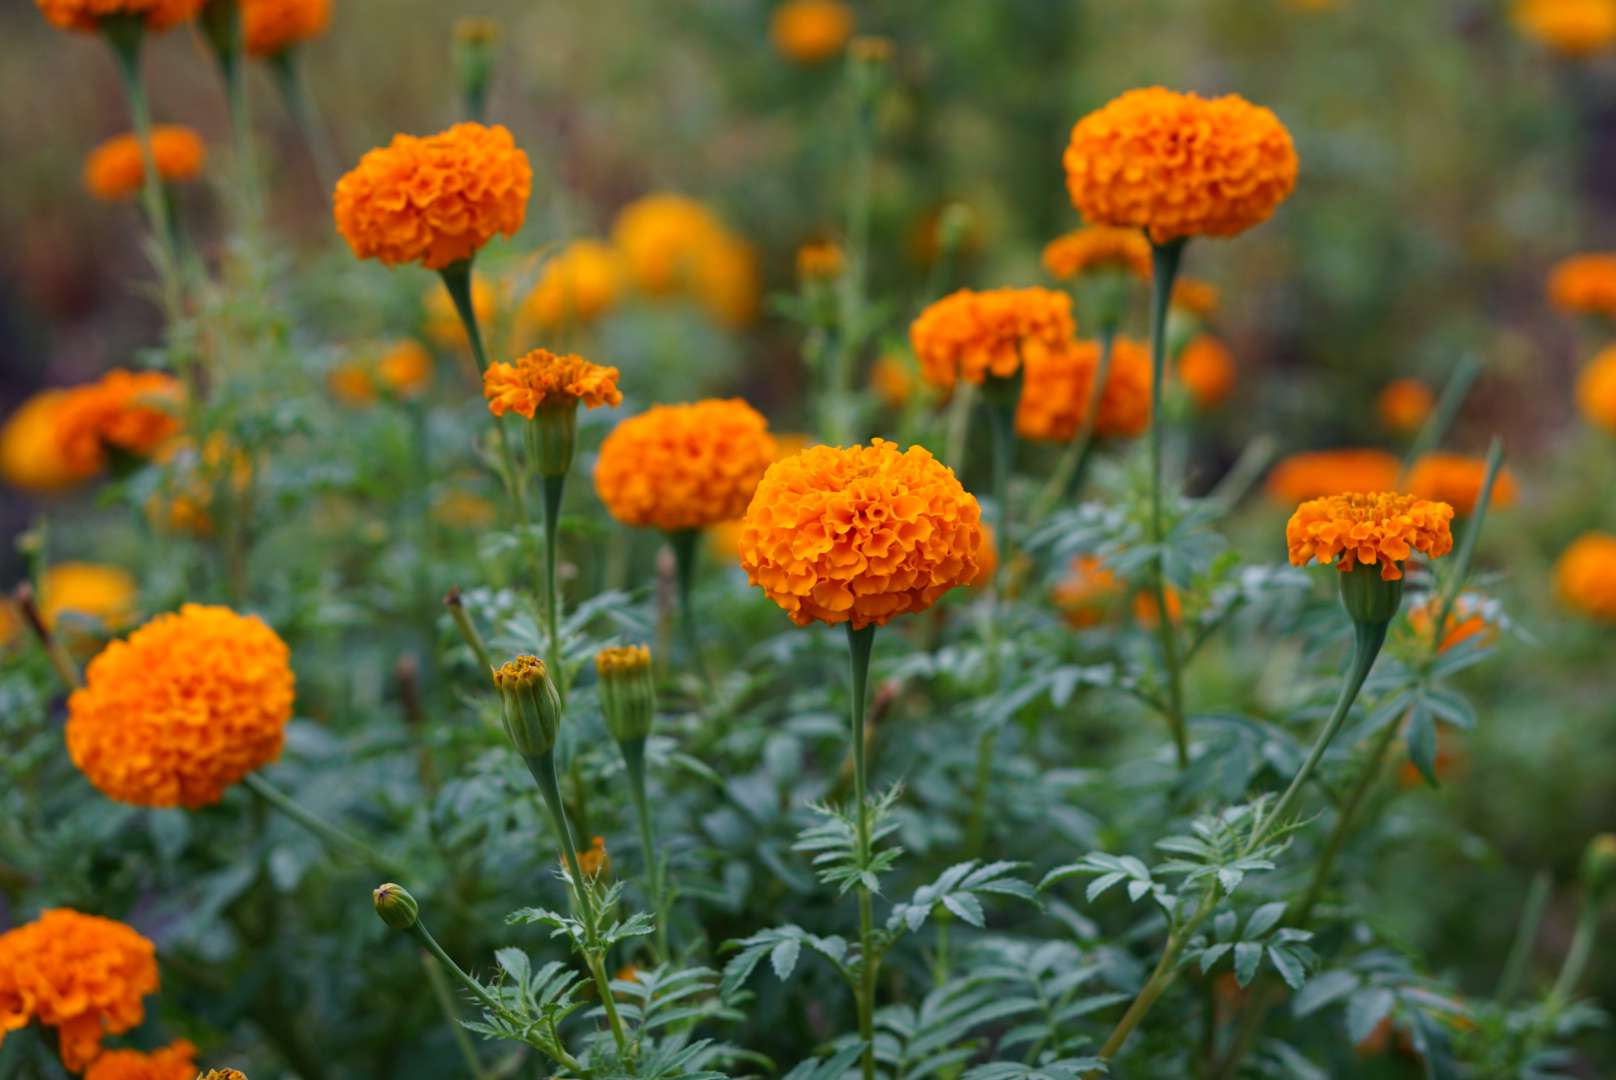 Marigold flowers with bright orange frilly petals clumped on top of stems